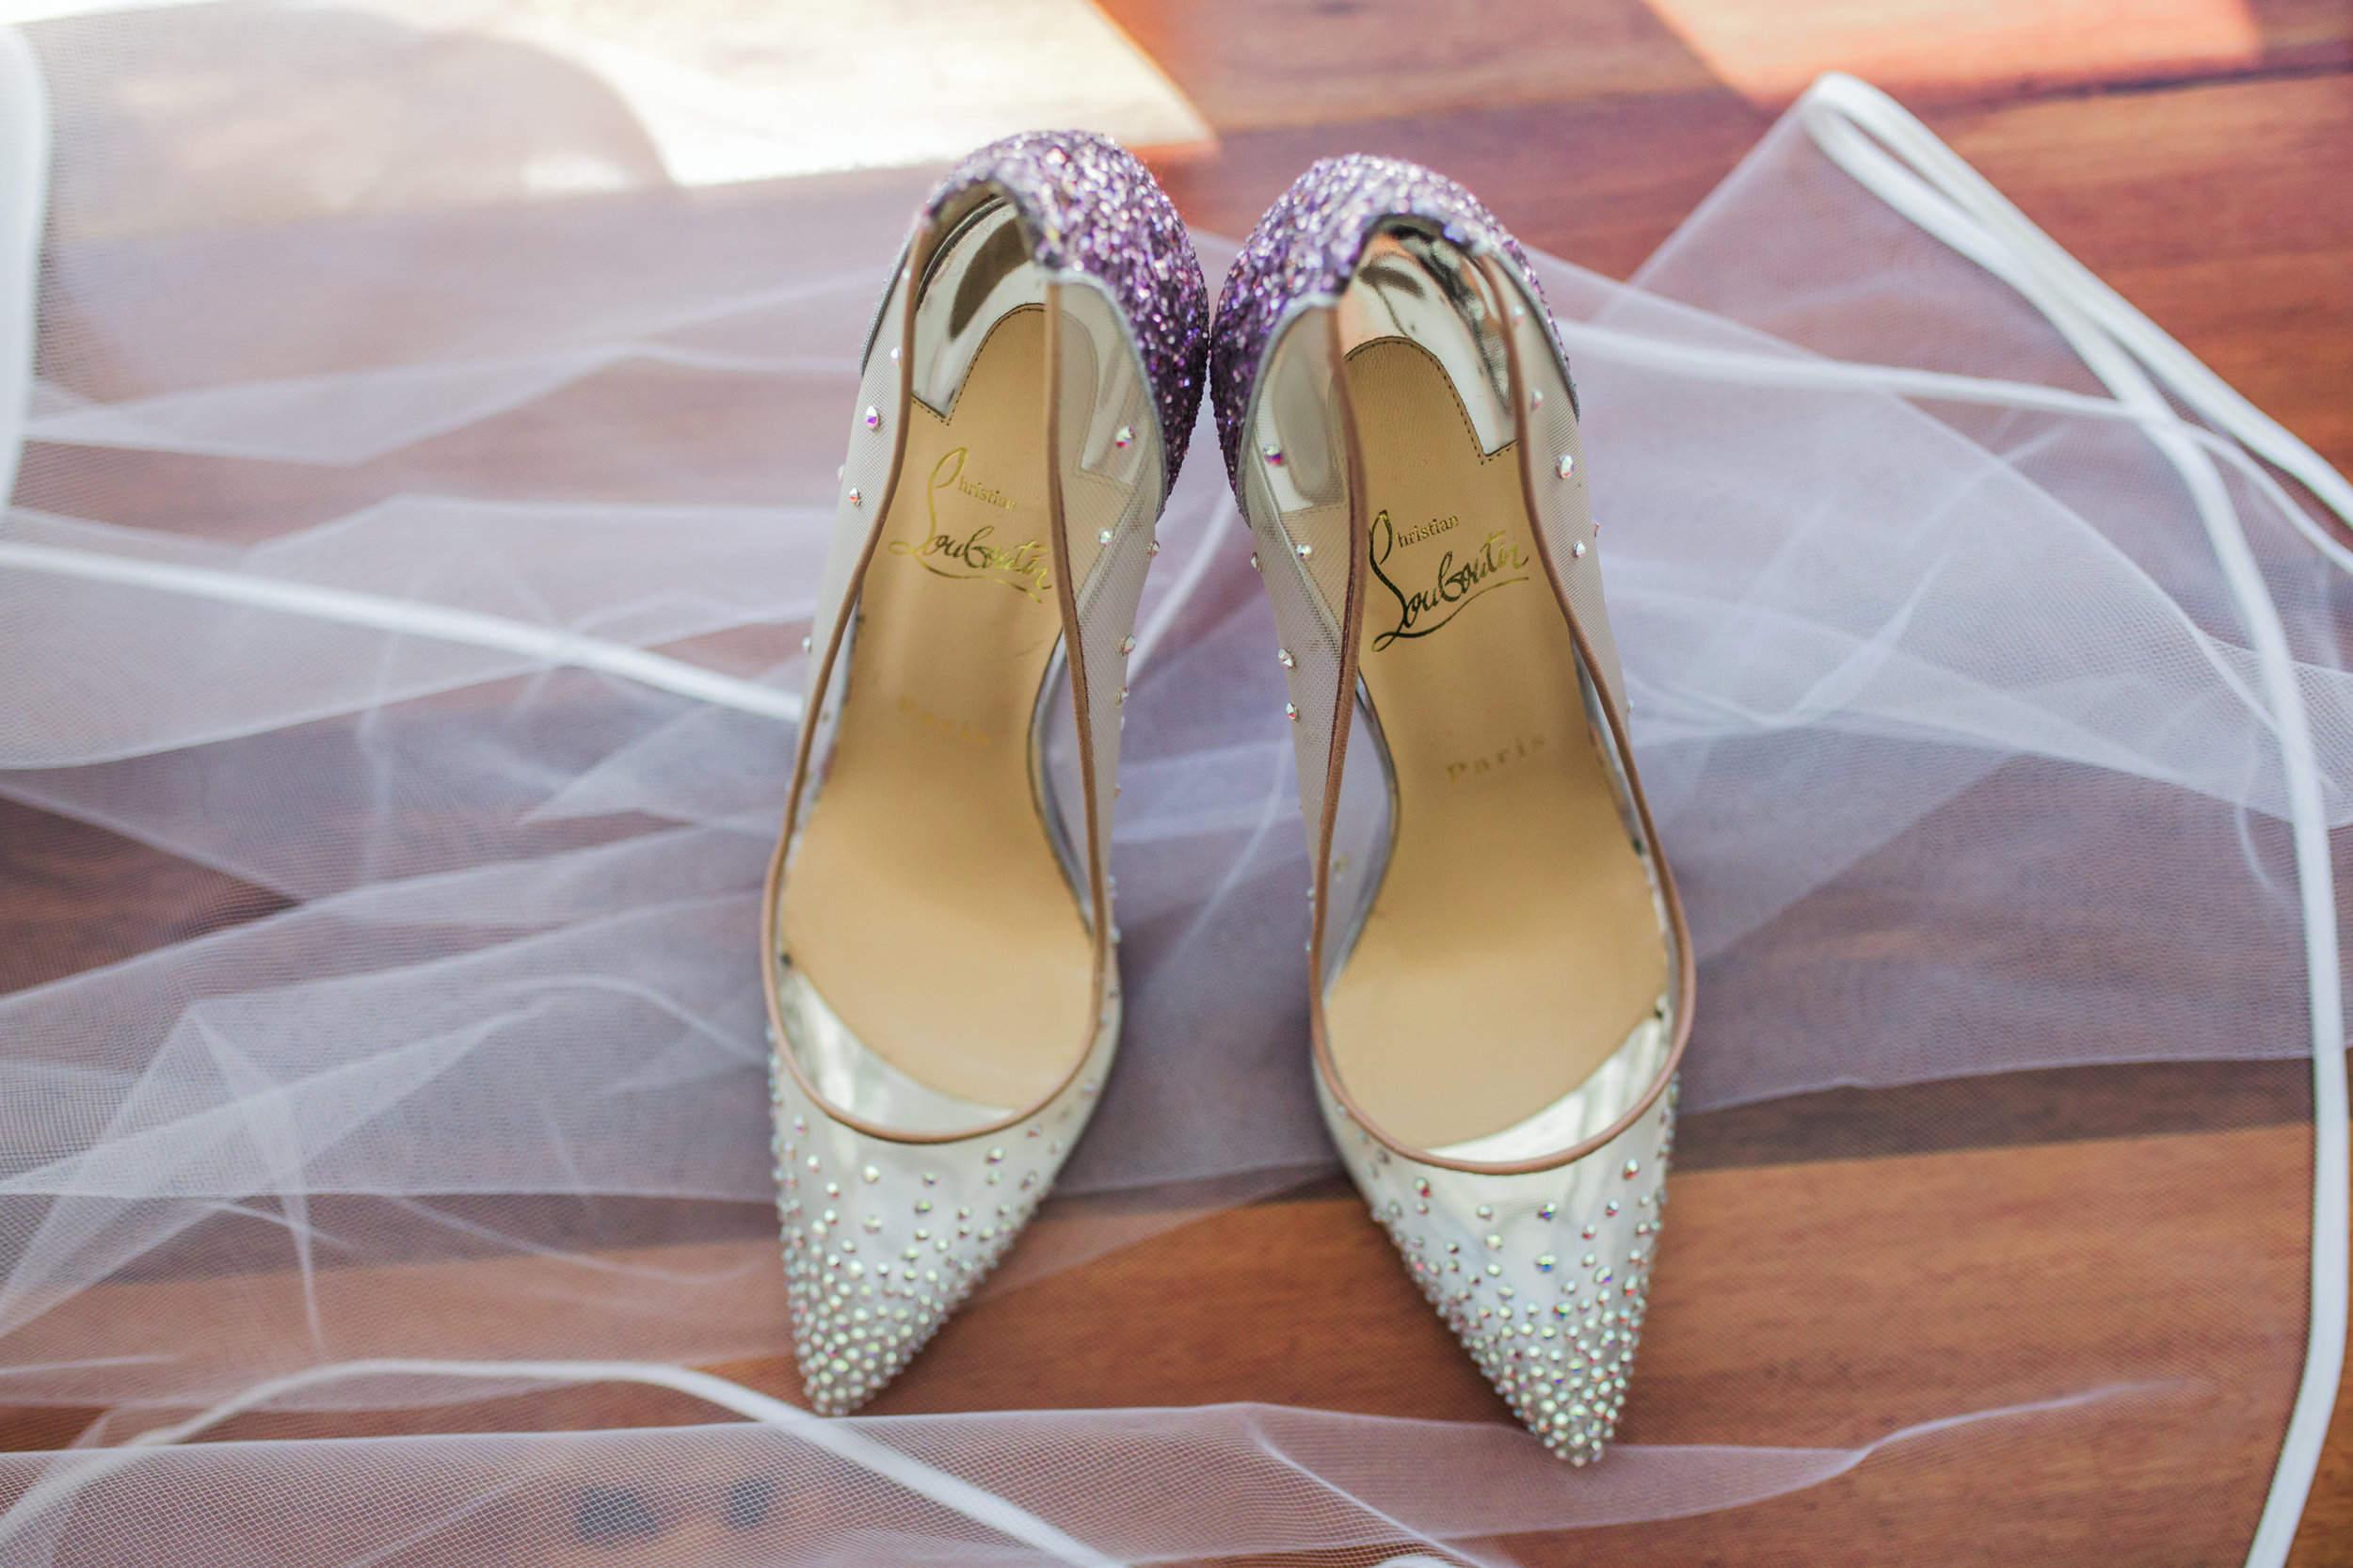 Wedding-Shoes-Brisbane-Christian-Louboutin-HT-Events-Wedding-Planners.jpg